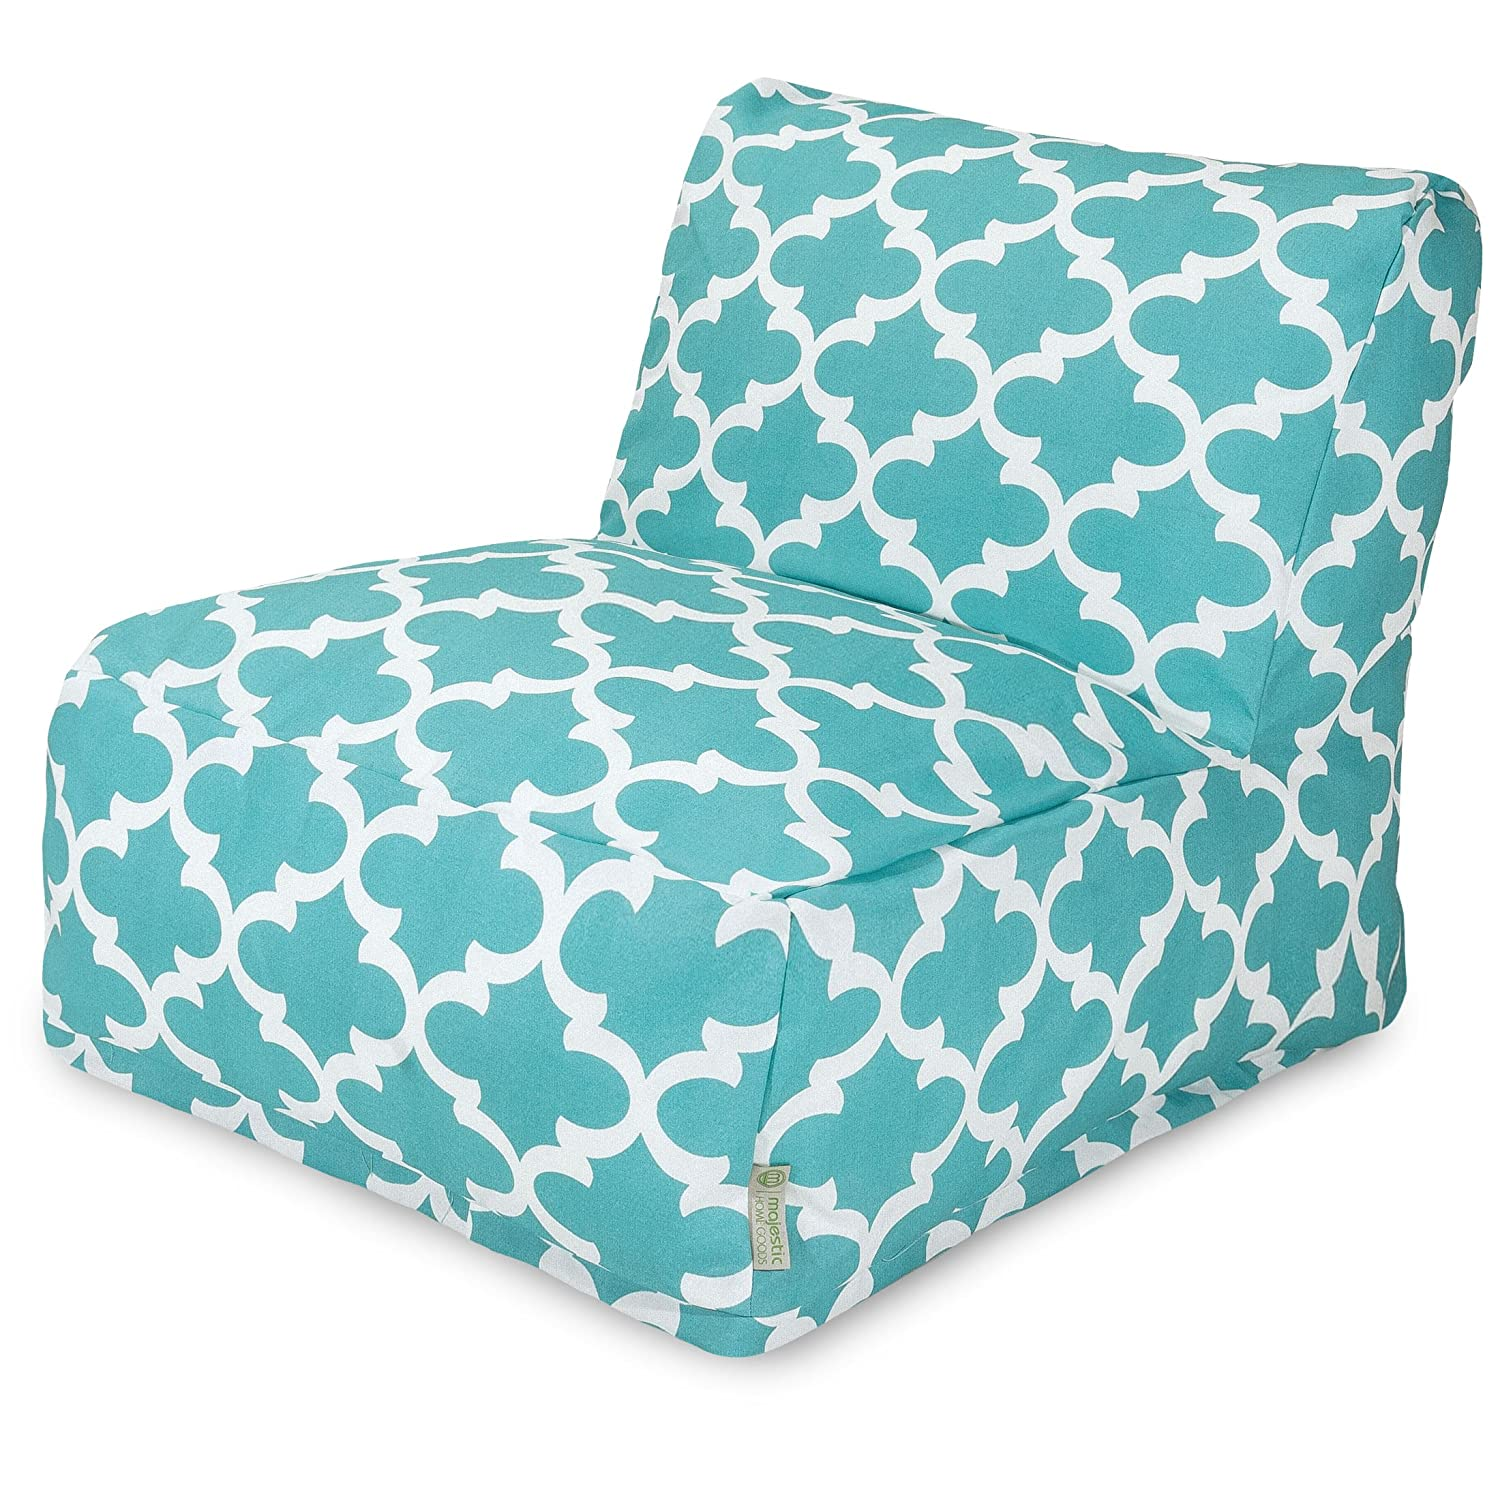 Amazon.com : Majestic Home Goods Trellis Bean Bag Chair Lounger, Teal :  Patio, Lawn & Garden - Amazon.com : Majestic Home Goods Trellis Bean Bag Chair Lounger